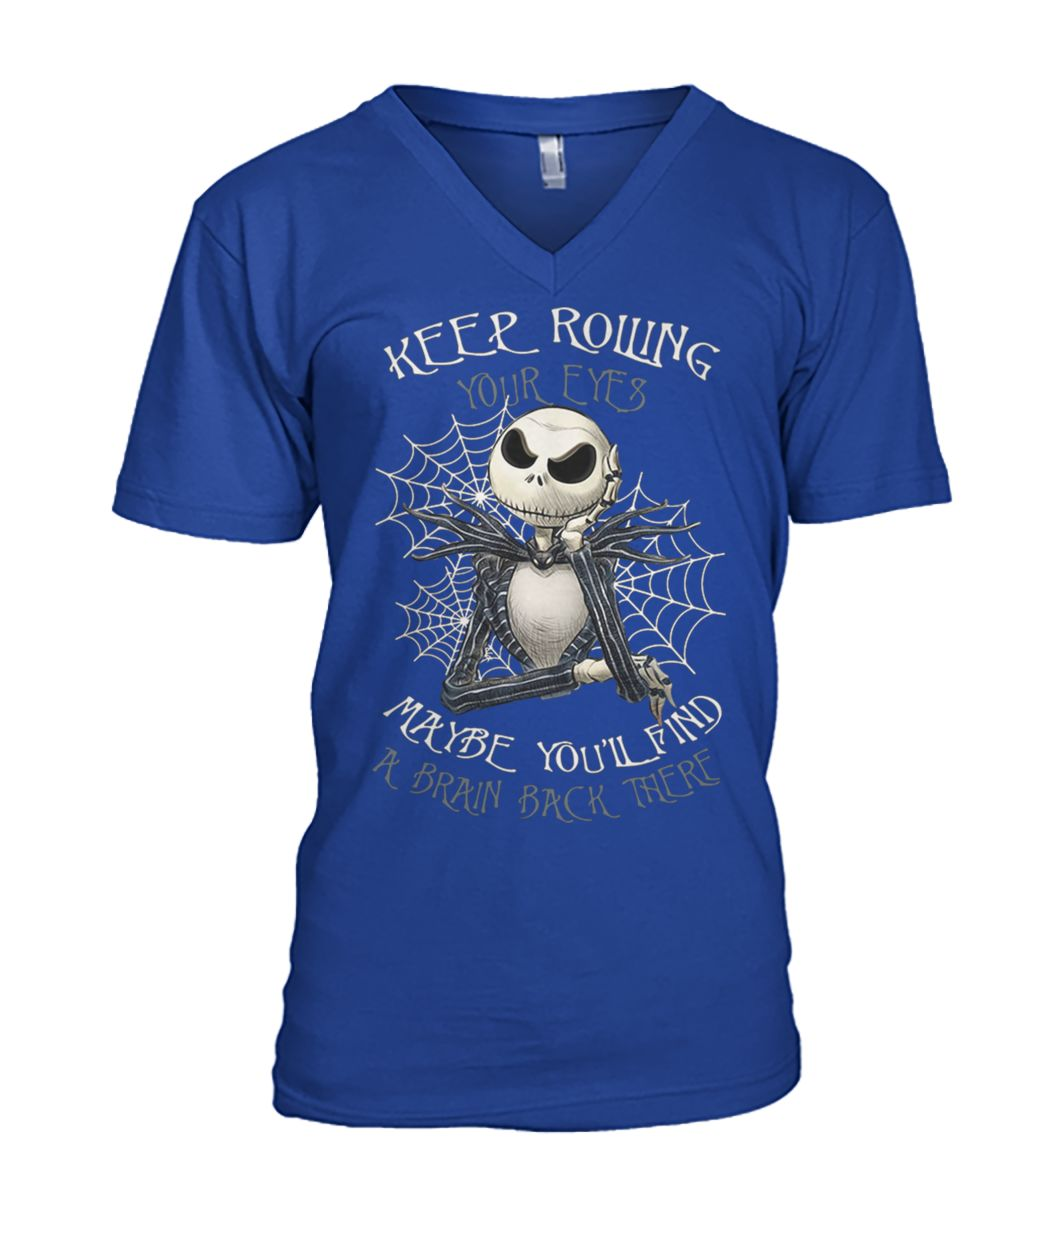 Jack skellington keep rolling maybe you'll find a brain back there mens v-neck